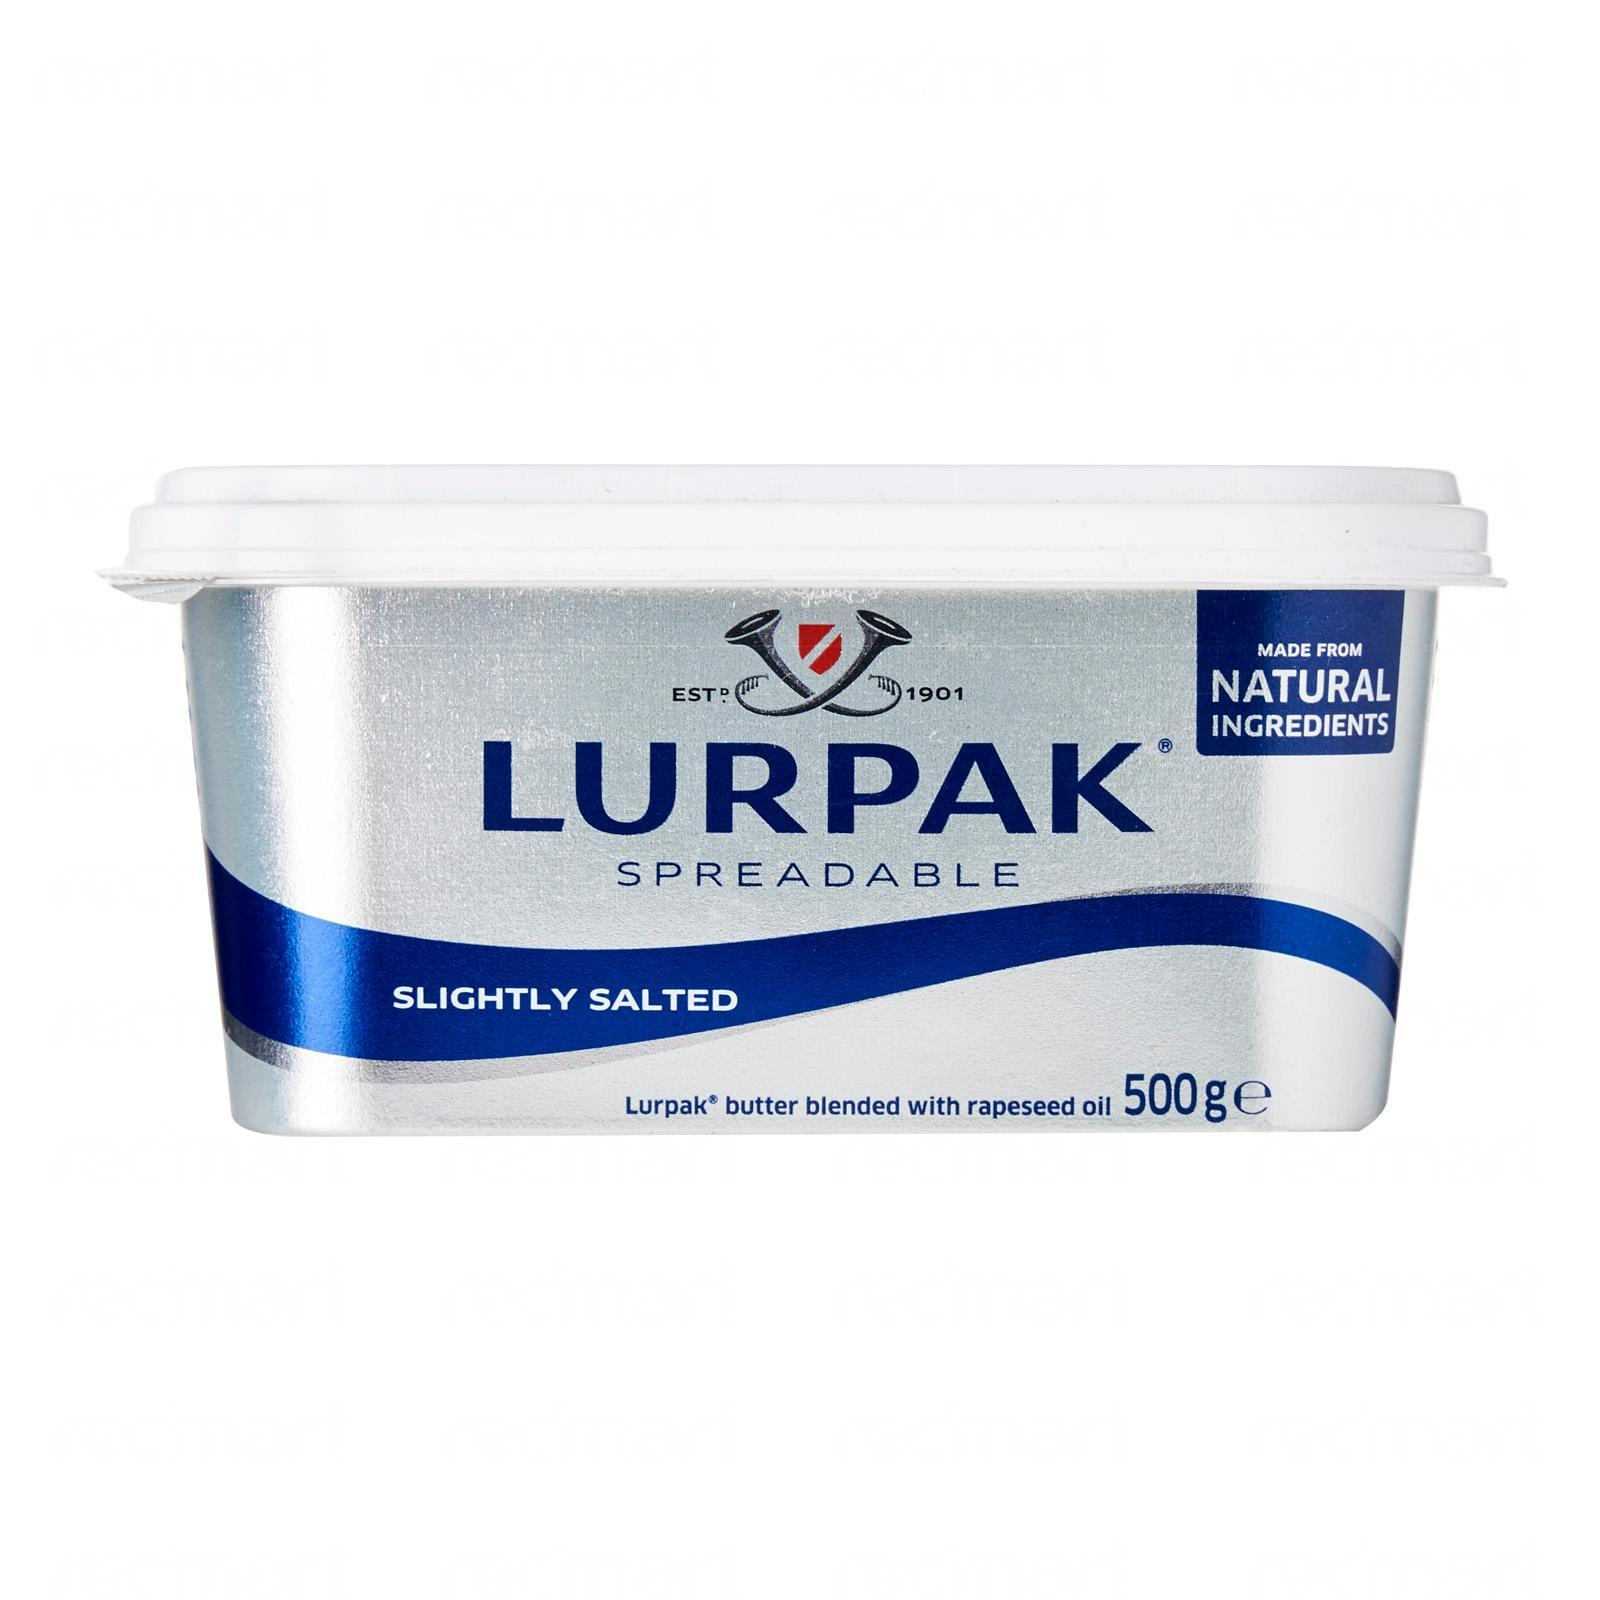 Lurpak Spreadable Salted Butter